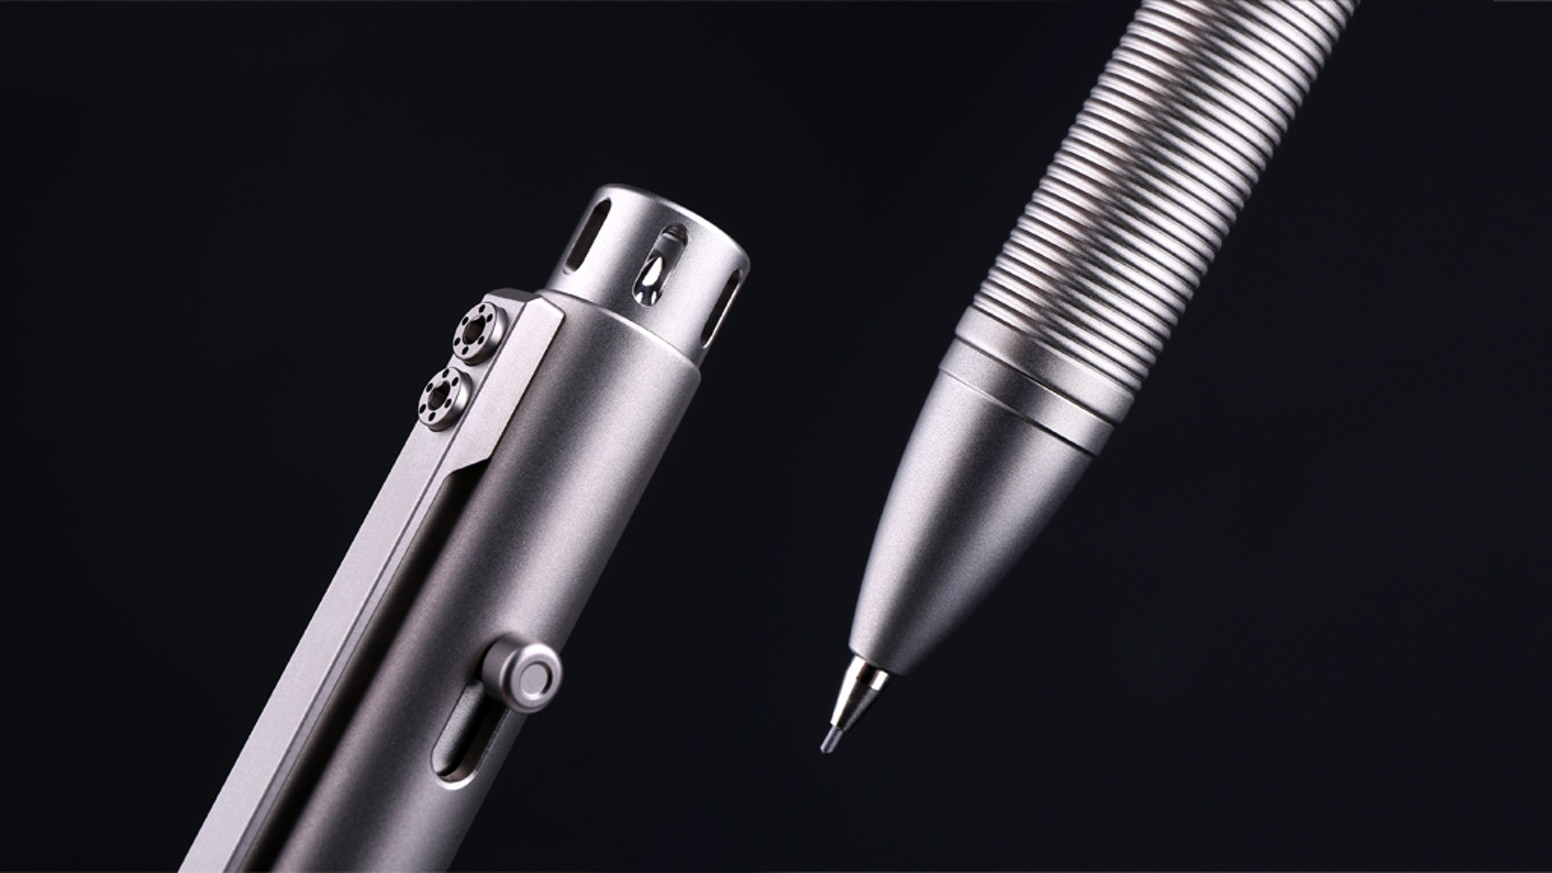 The best-made titanium pencil in the world.